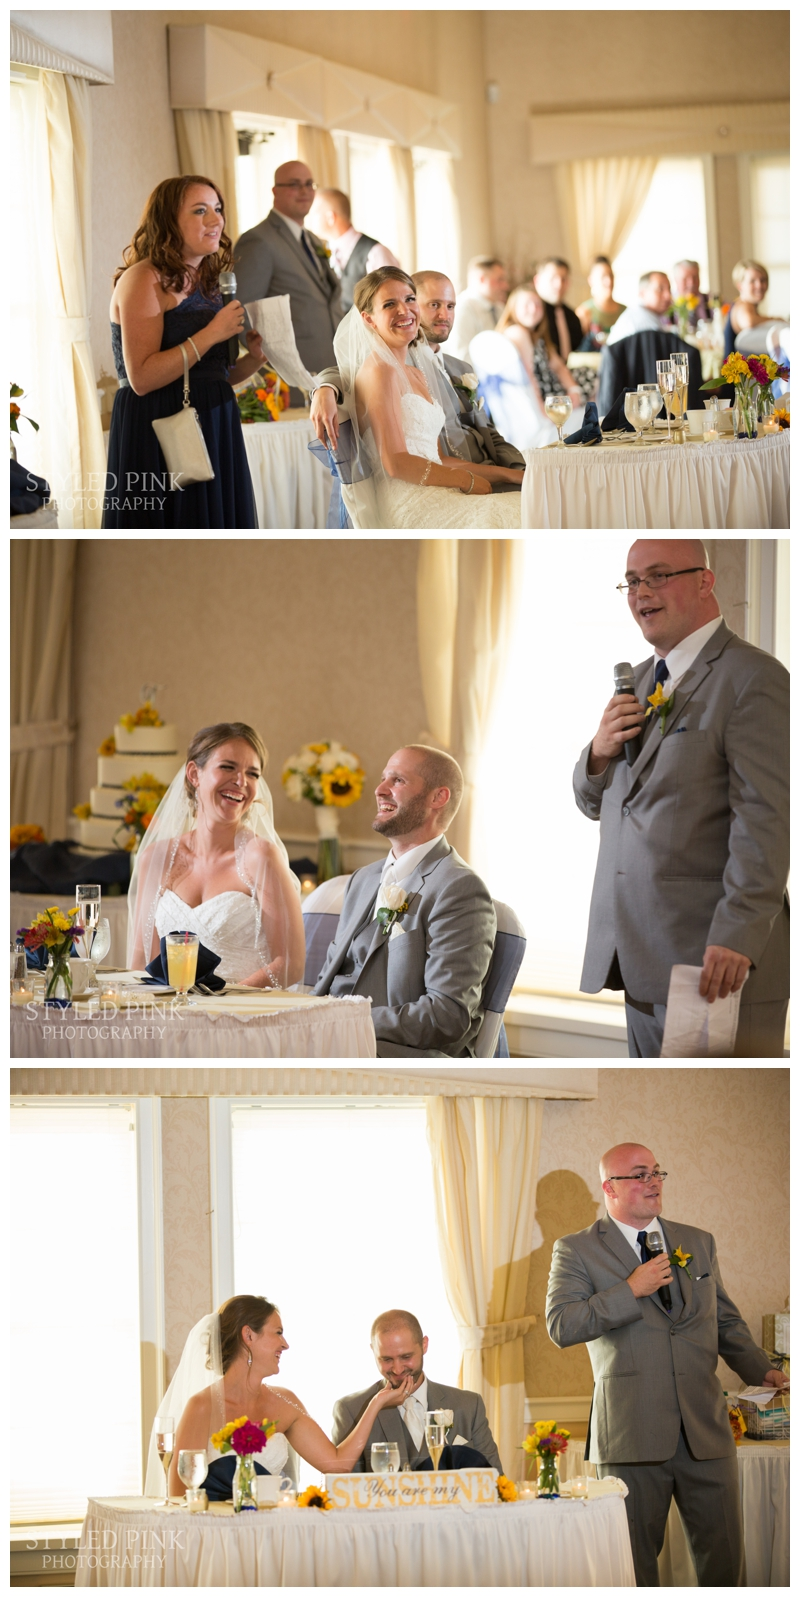 The maid of honor and best man make their speeches.